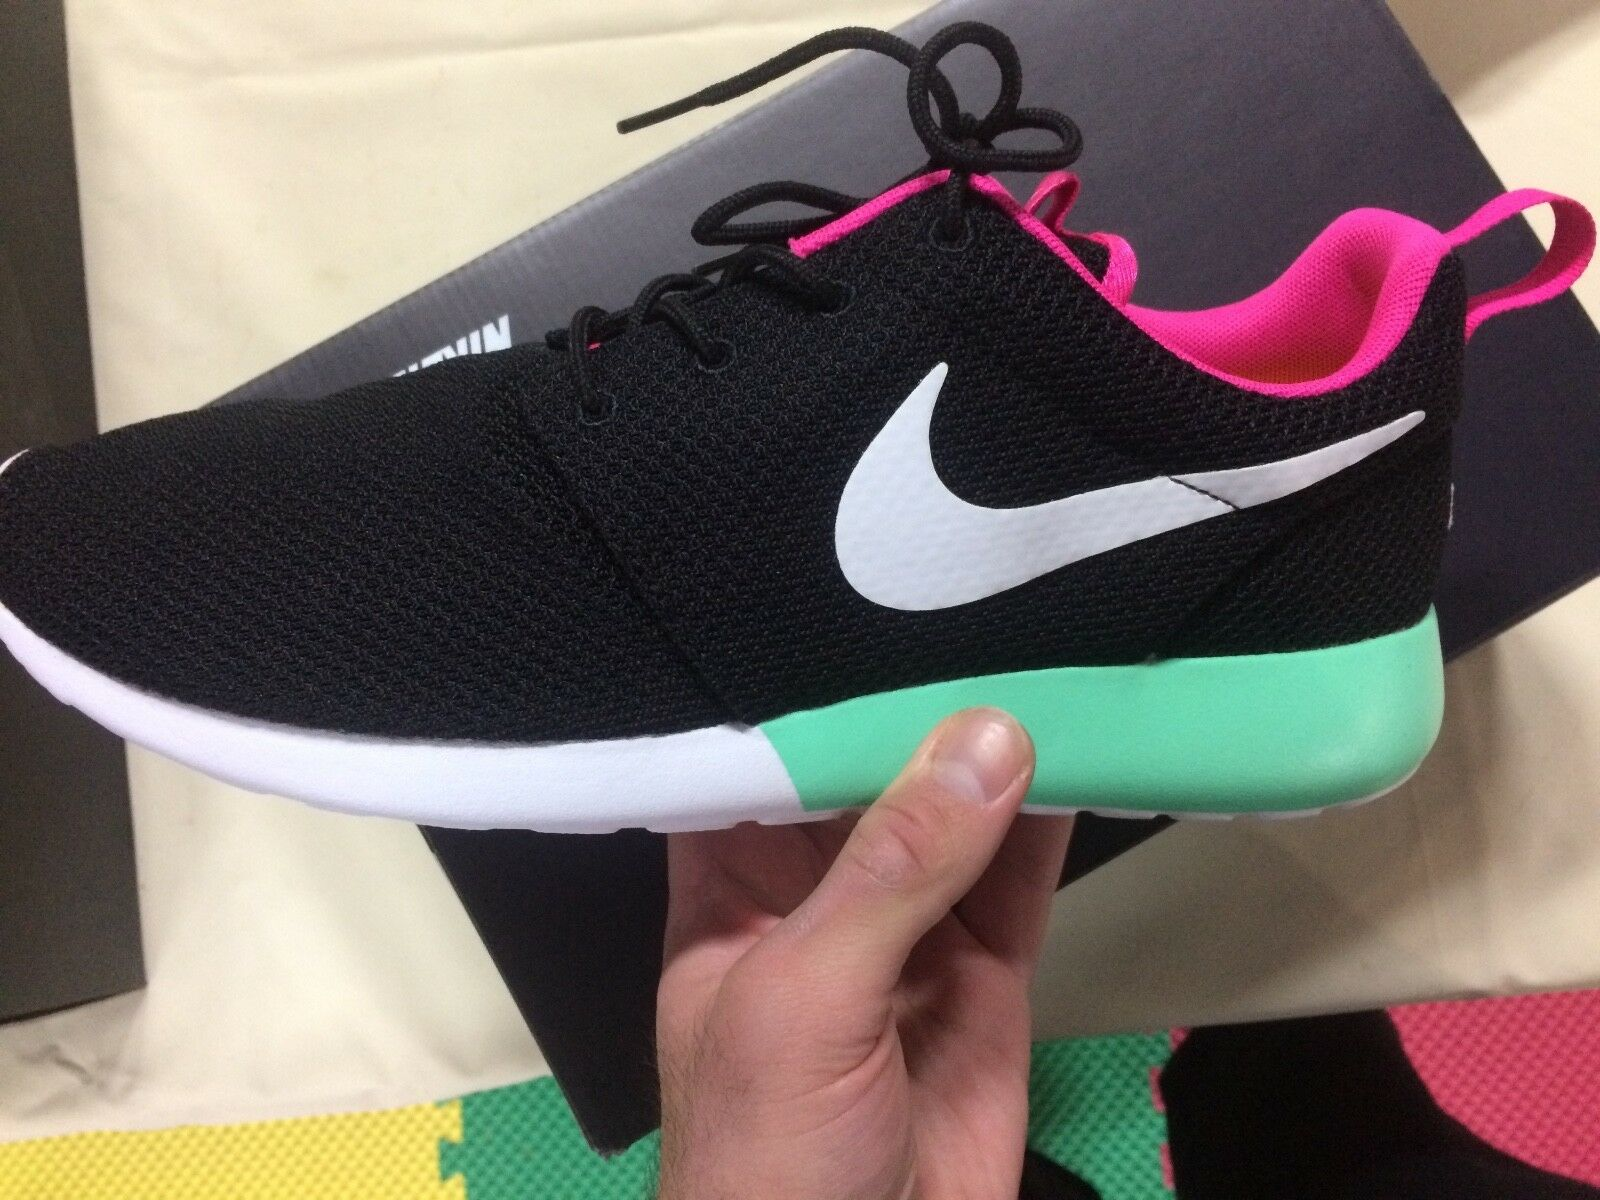 NikeID Roshe One Yeezy colorway Size 10, New with box